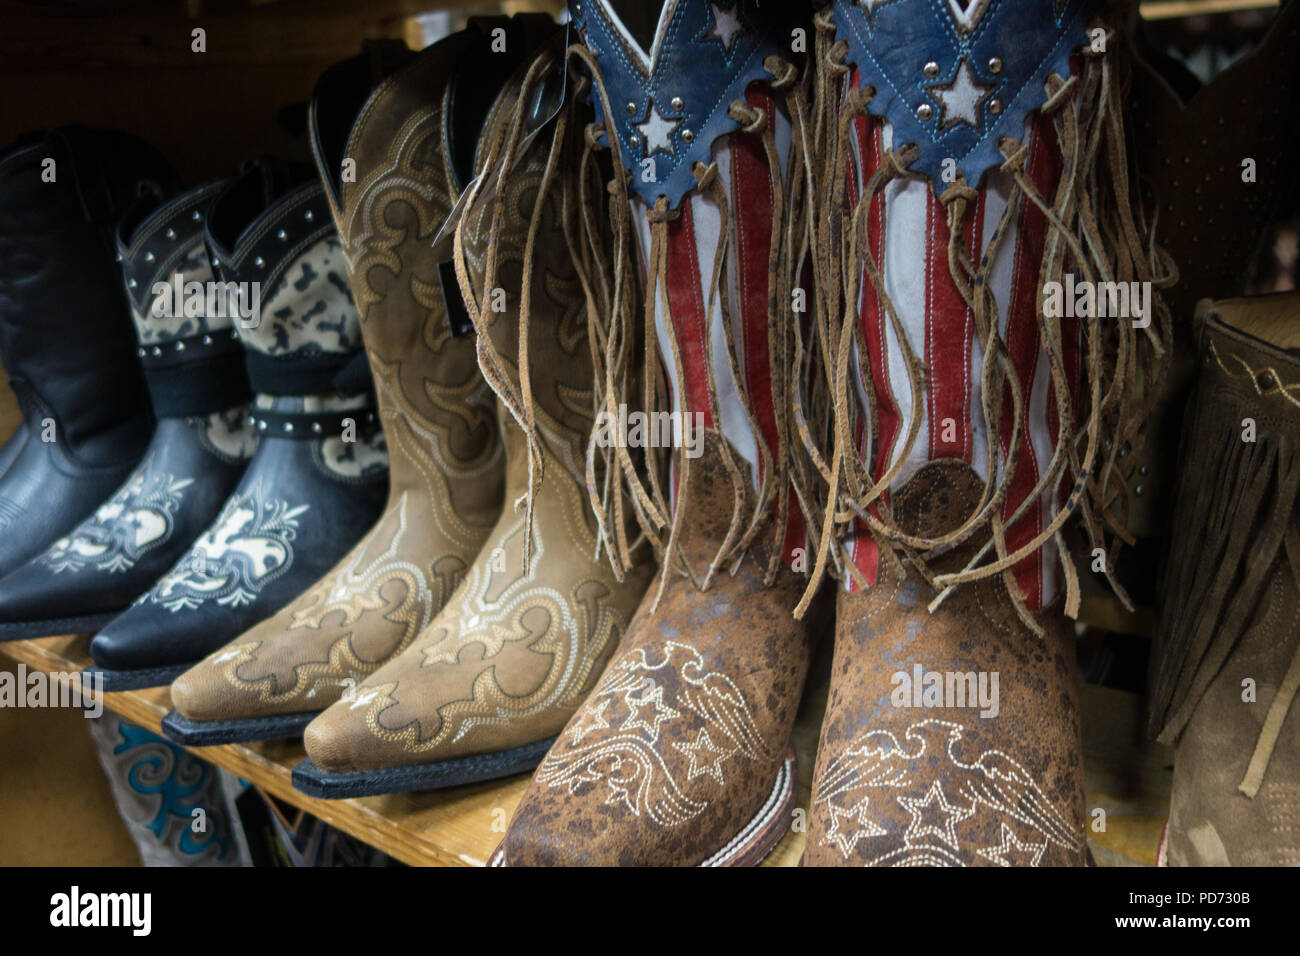 e5b95958e0b Rows of cowboy boots for sale in a boot shop in Nashville, TN, USA ...